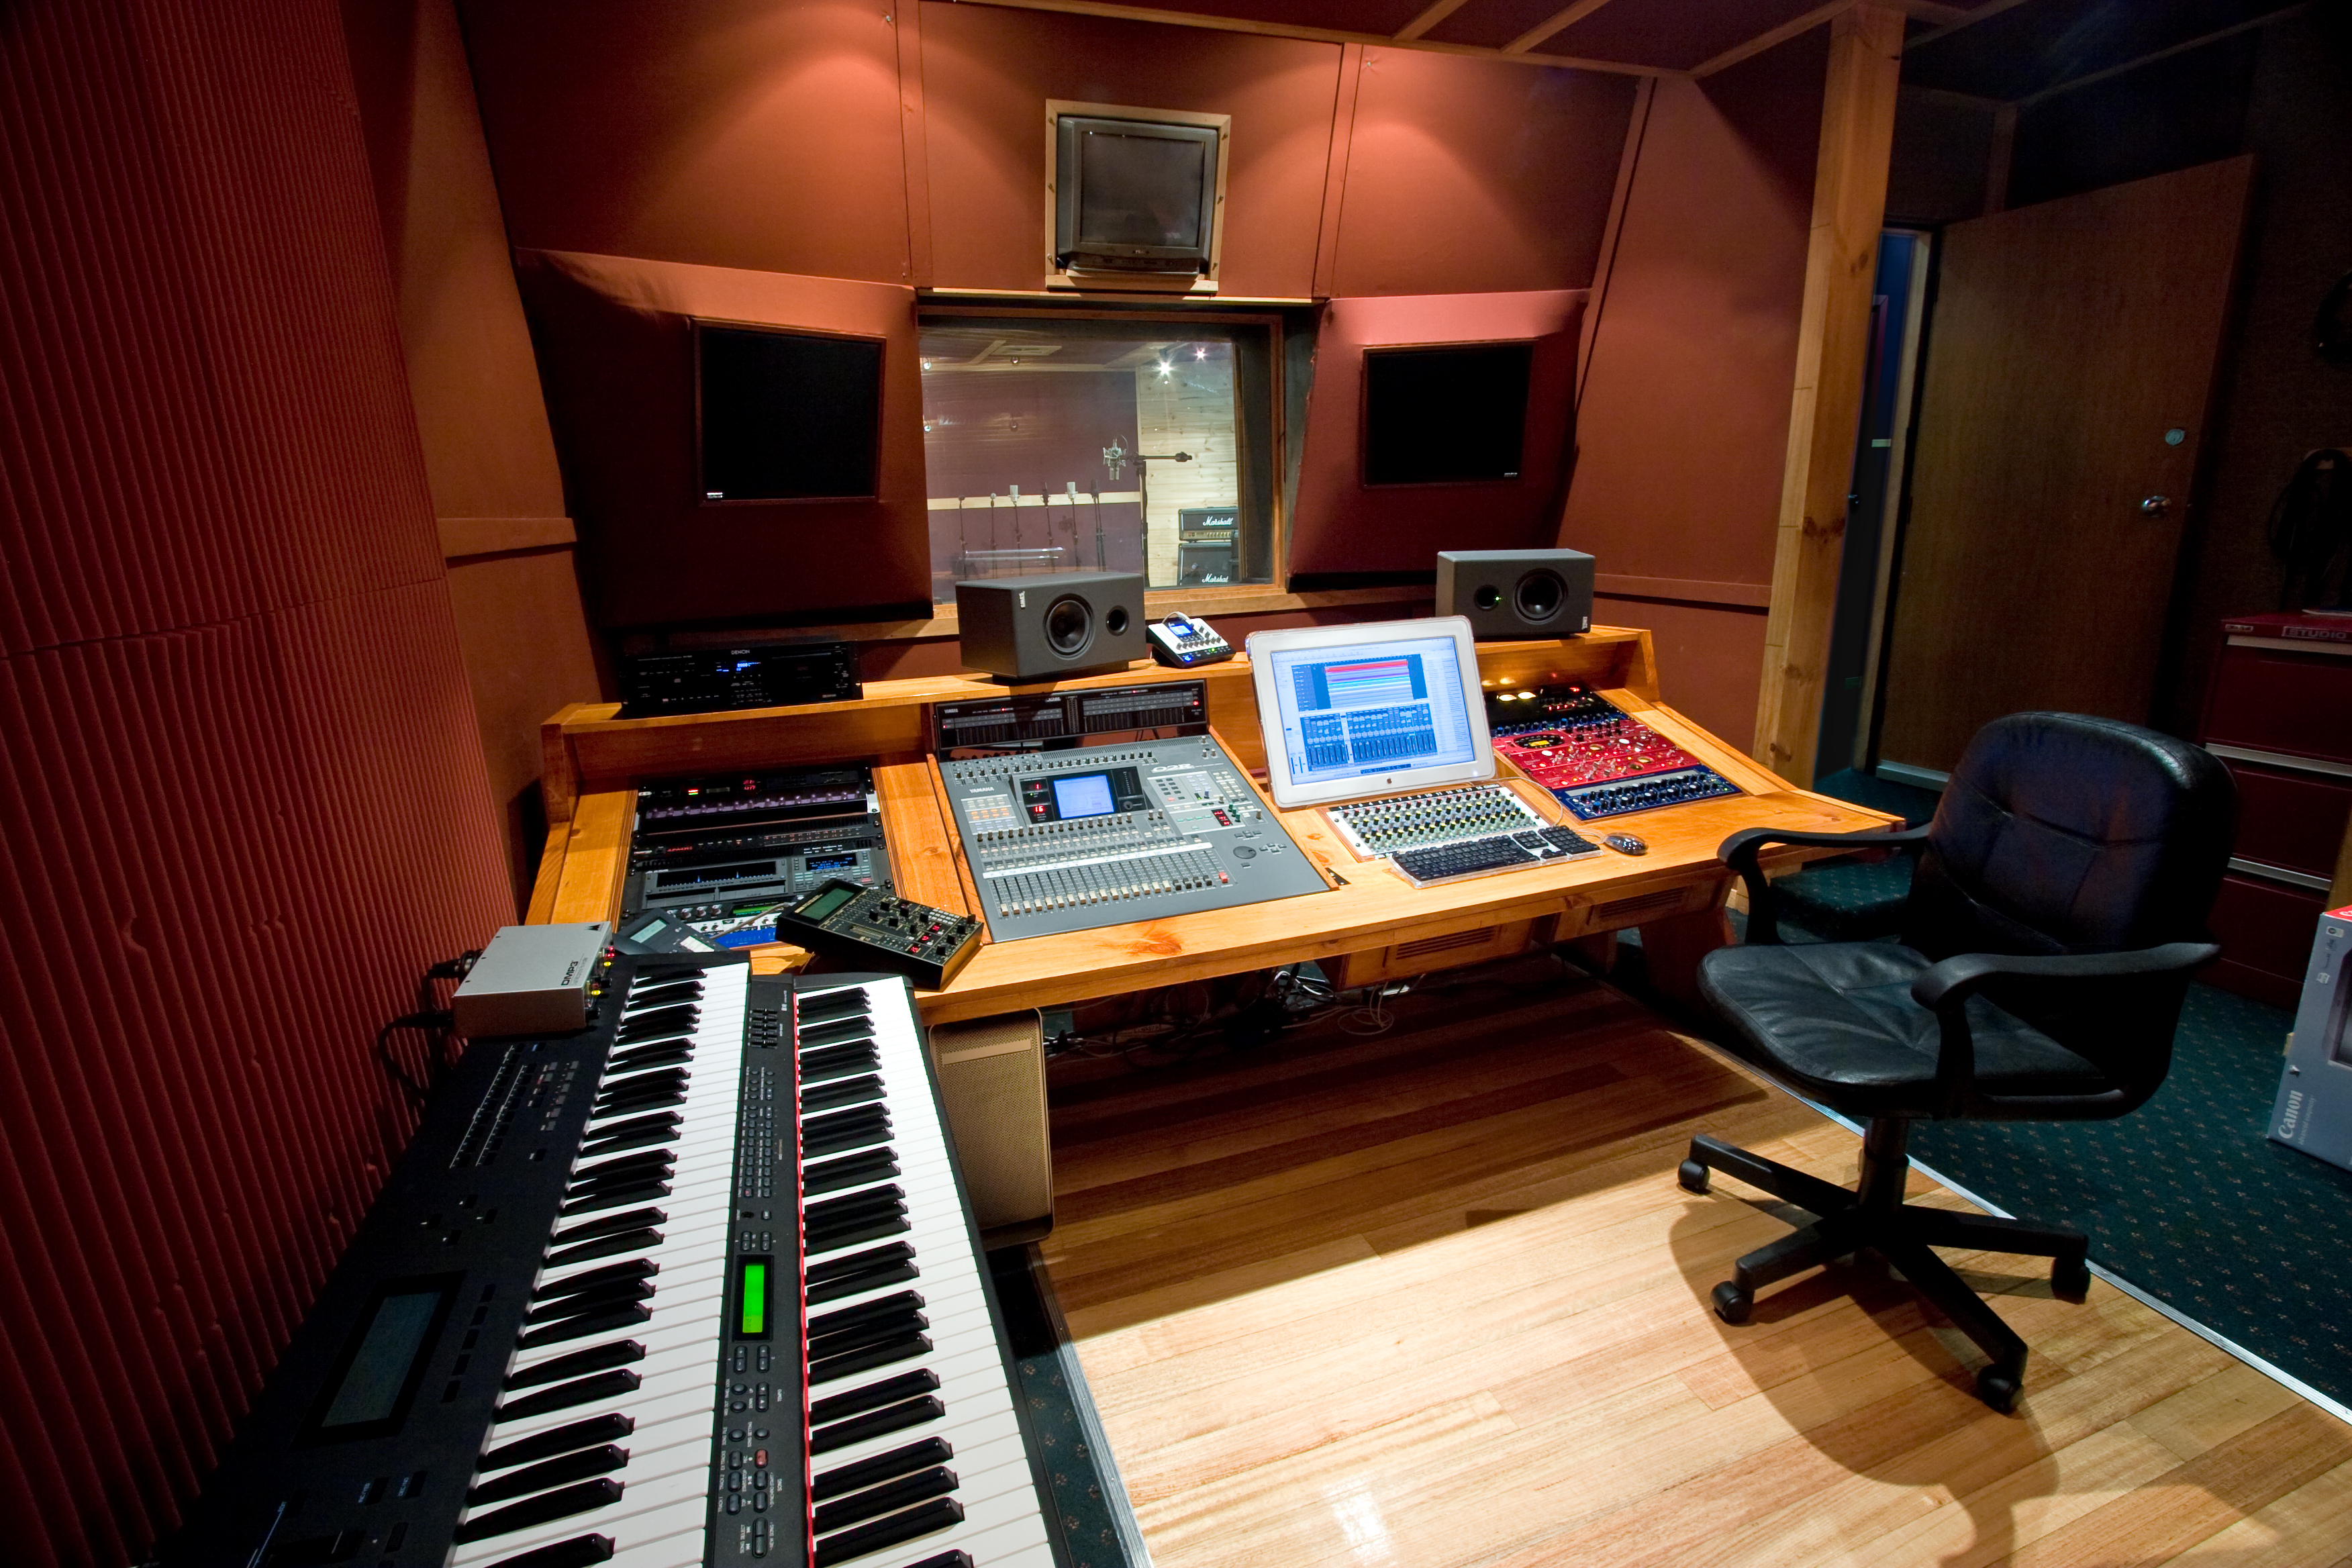 One of 3 music studios at Studio 52